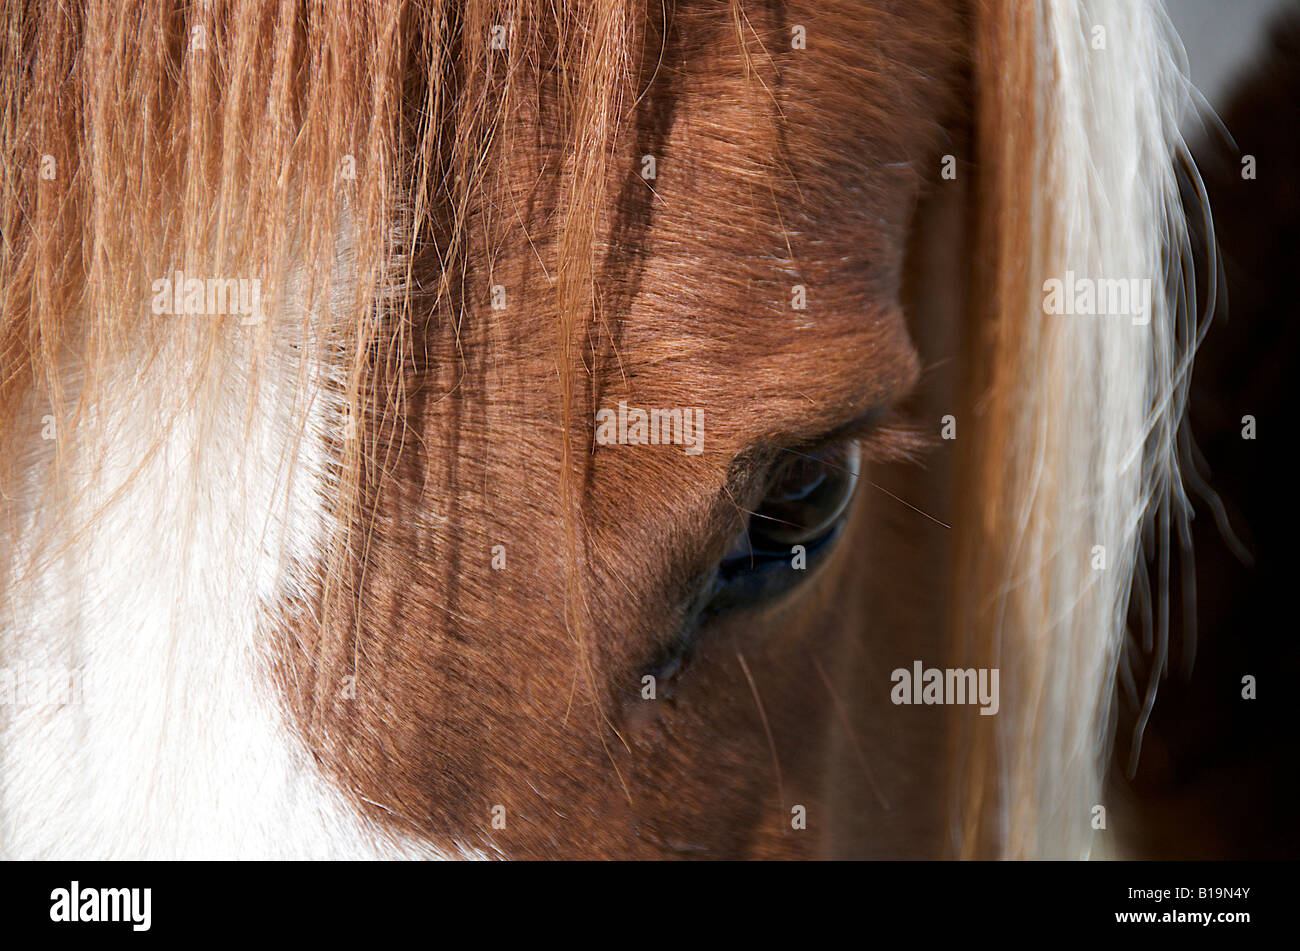 Oeil d'un cheval close up Photo Stock